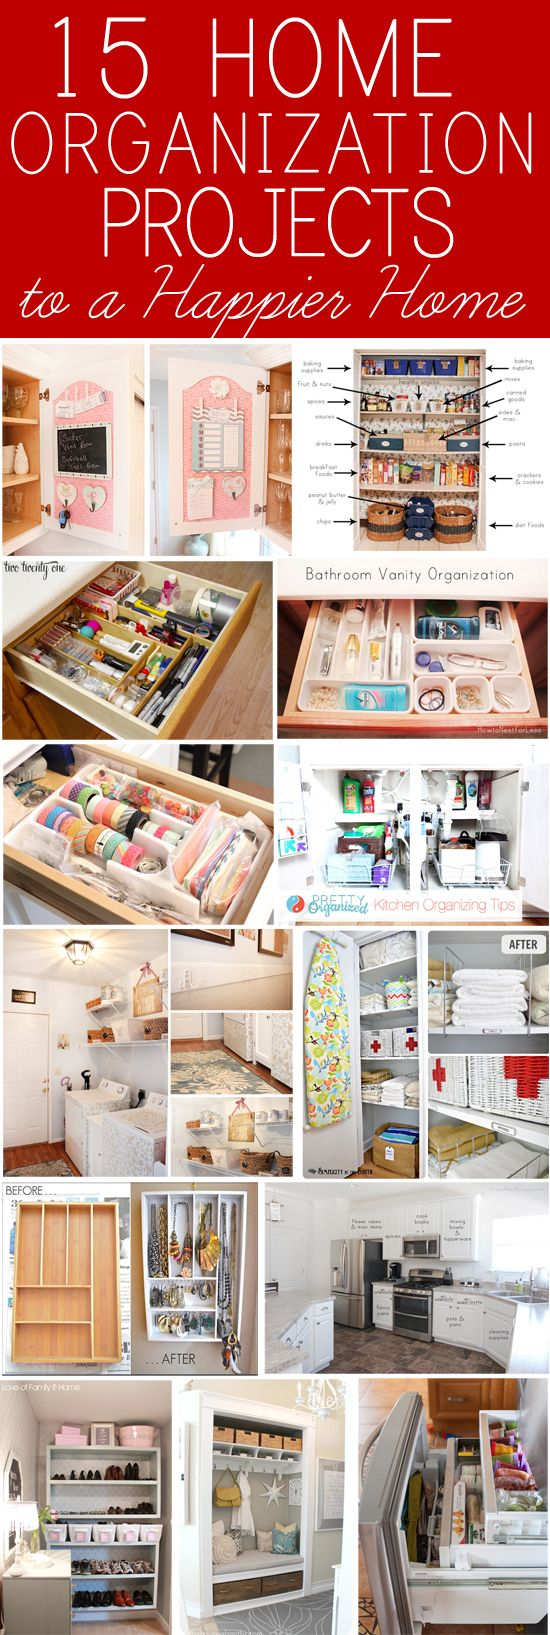 15 home organization projects to a happier home hacks pinterest organisation organisieren. Black Bedroom Furniture Sets. Home Design Ideas